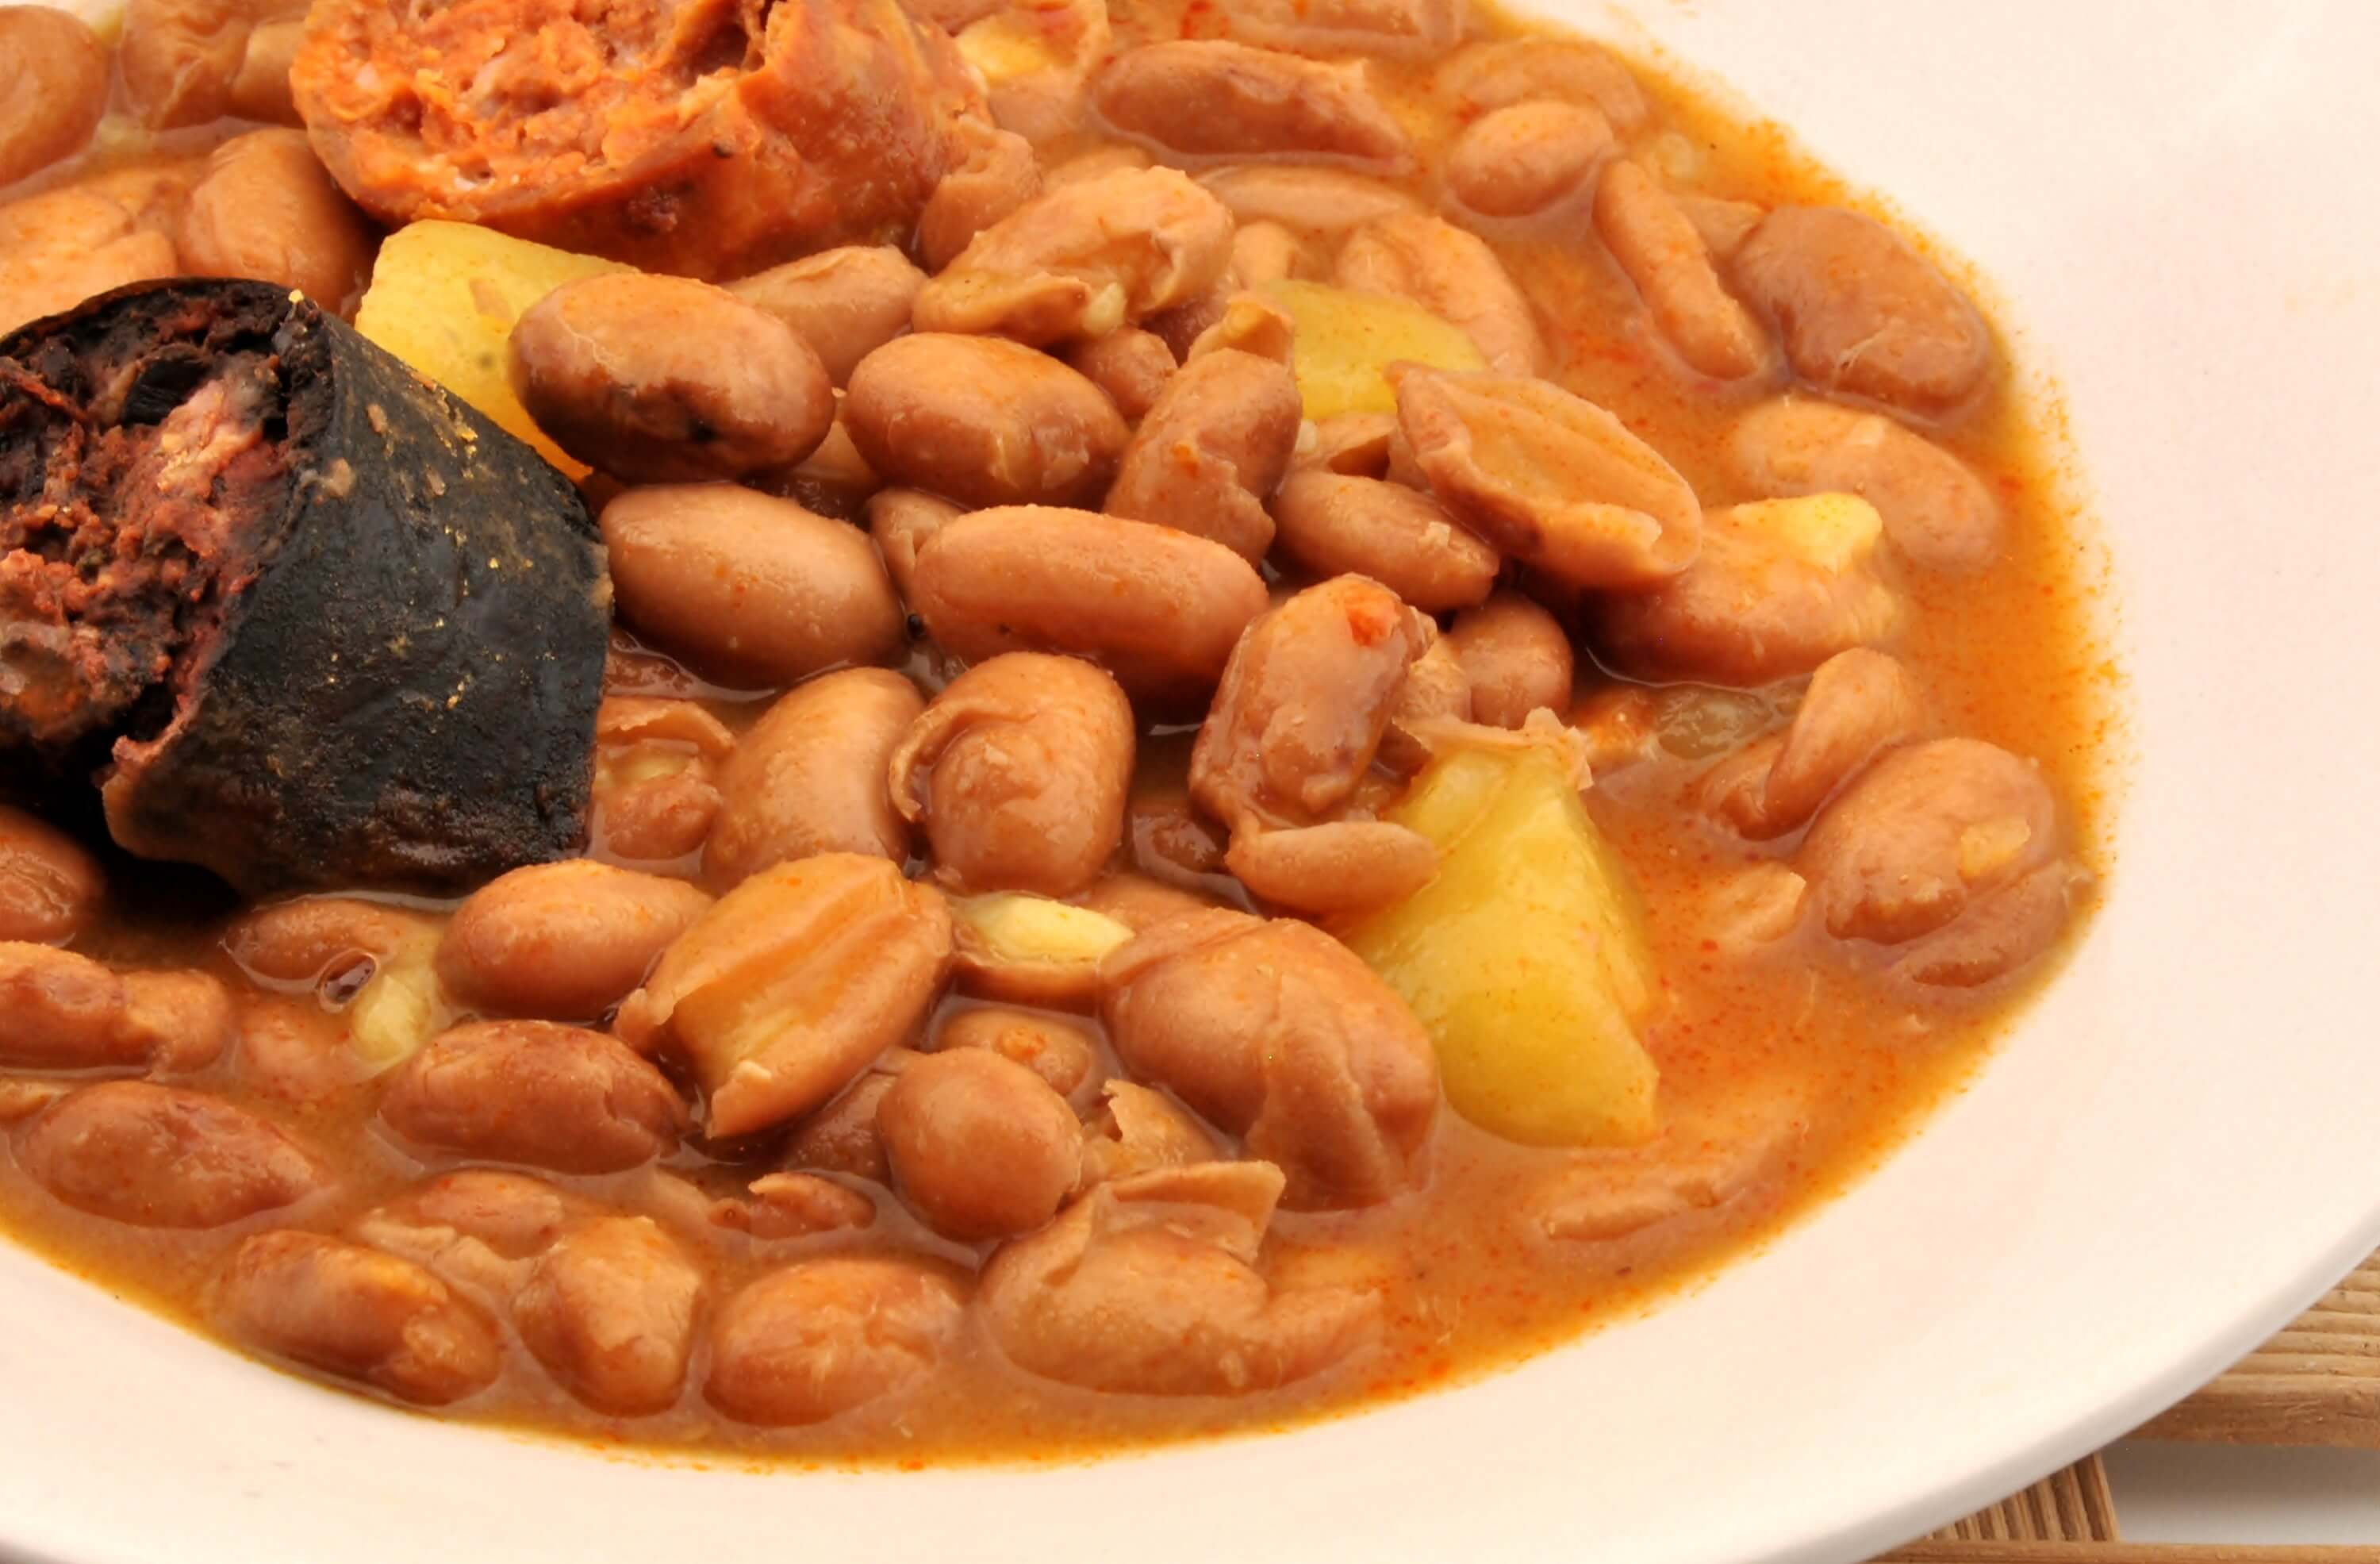 6 Dishes to Eat in Spain Besides Paella and Tapas - Fabada Asturiana